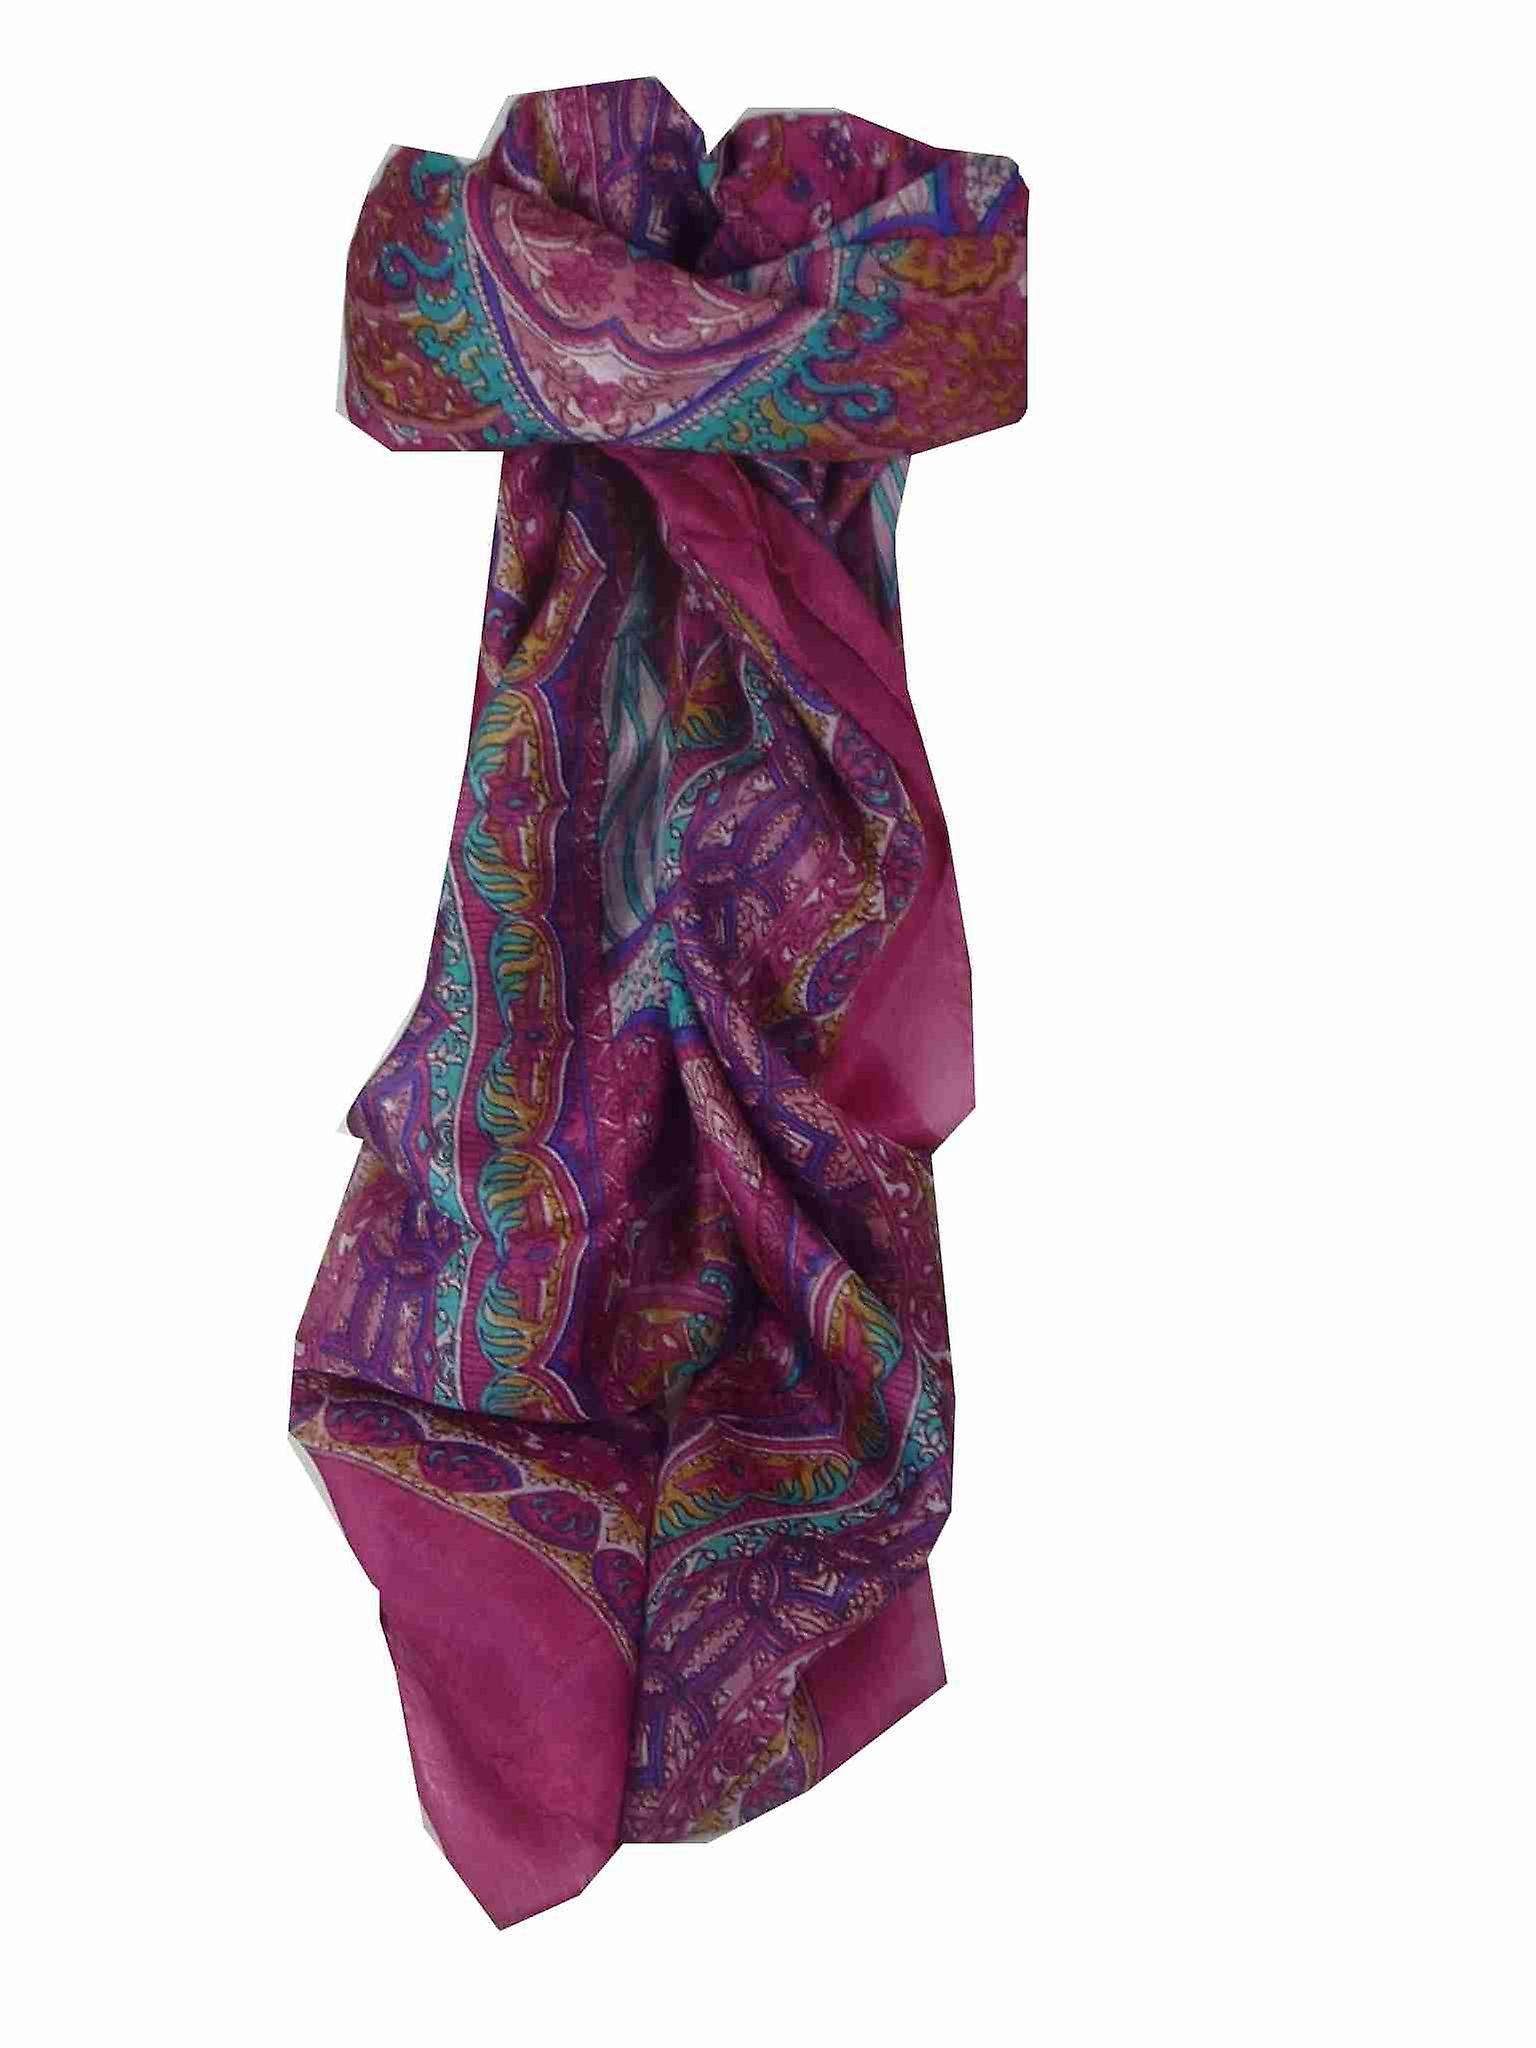 Mulberry Silk Traditional Square Scarf Tara Pink by Pashmina & Silk